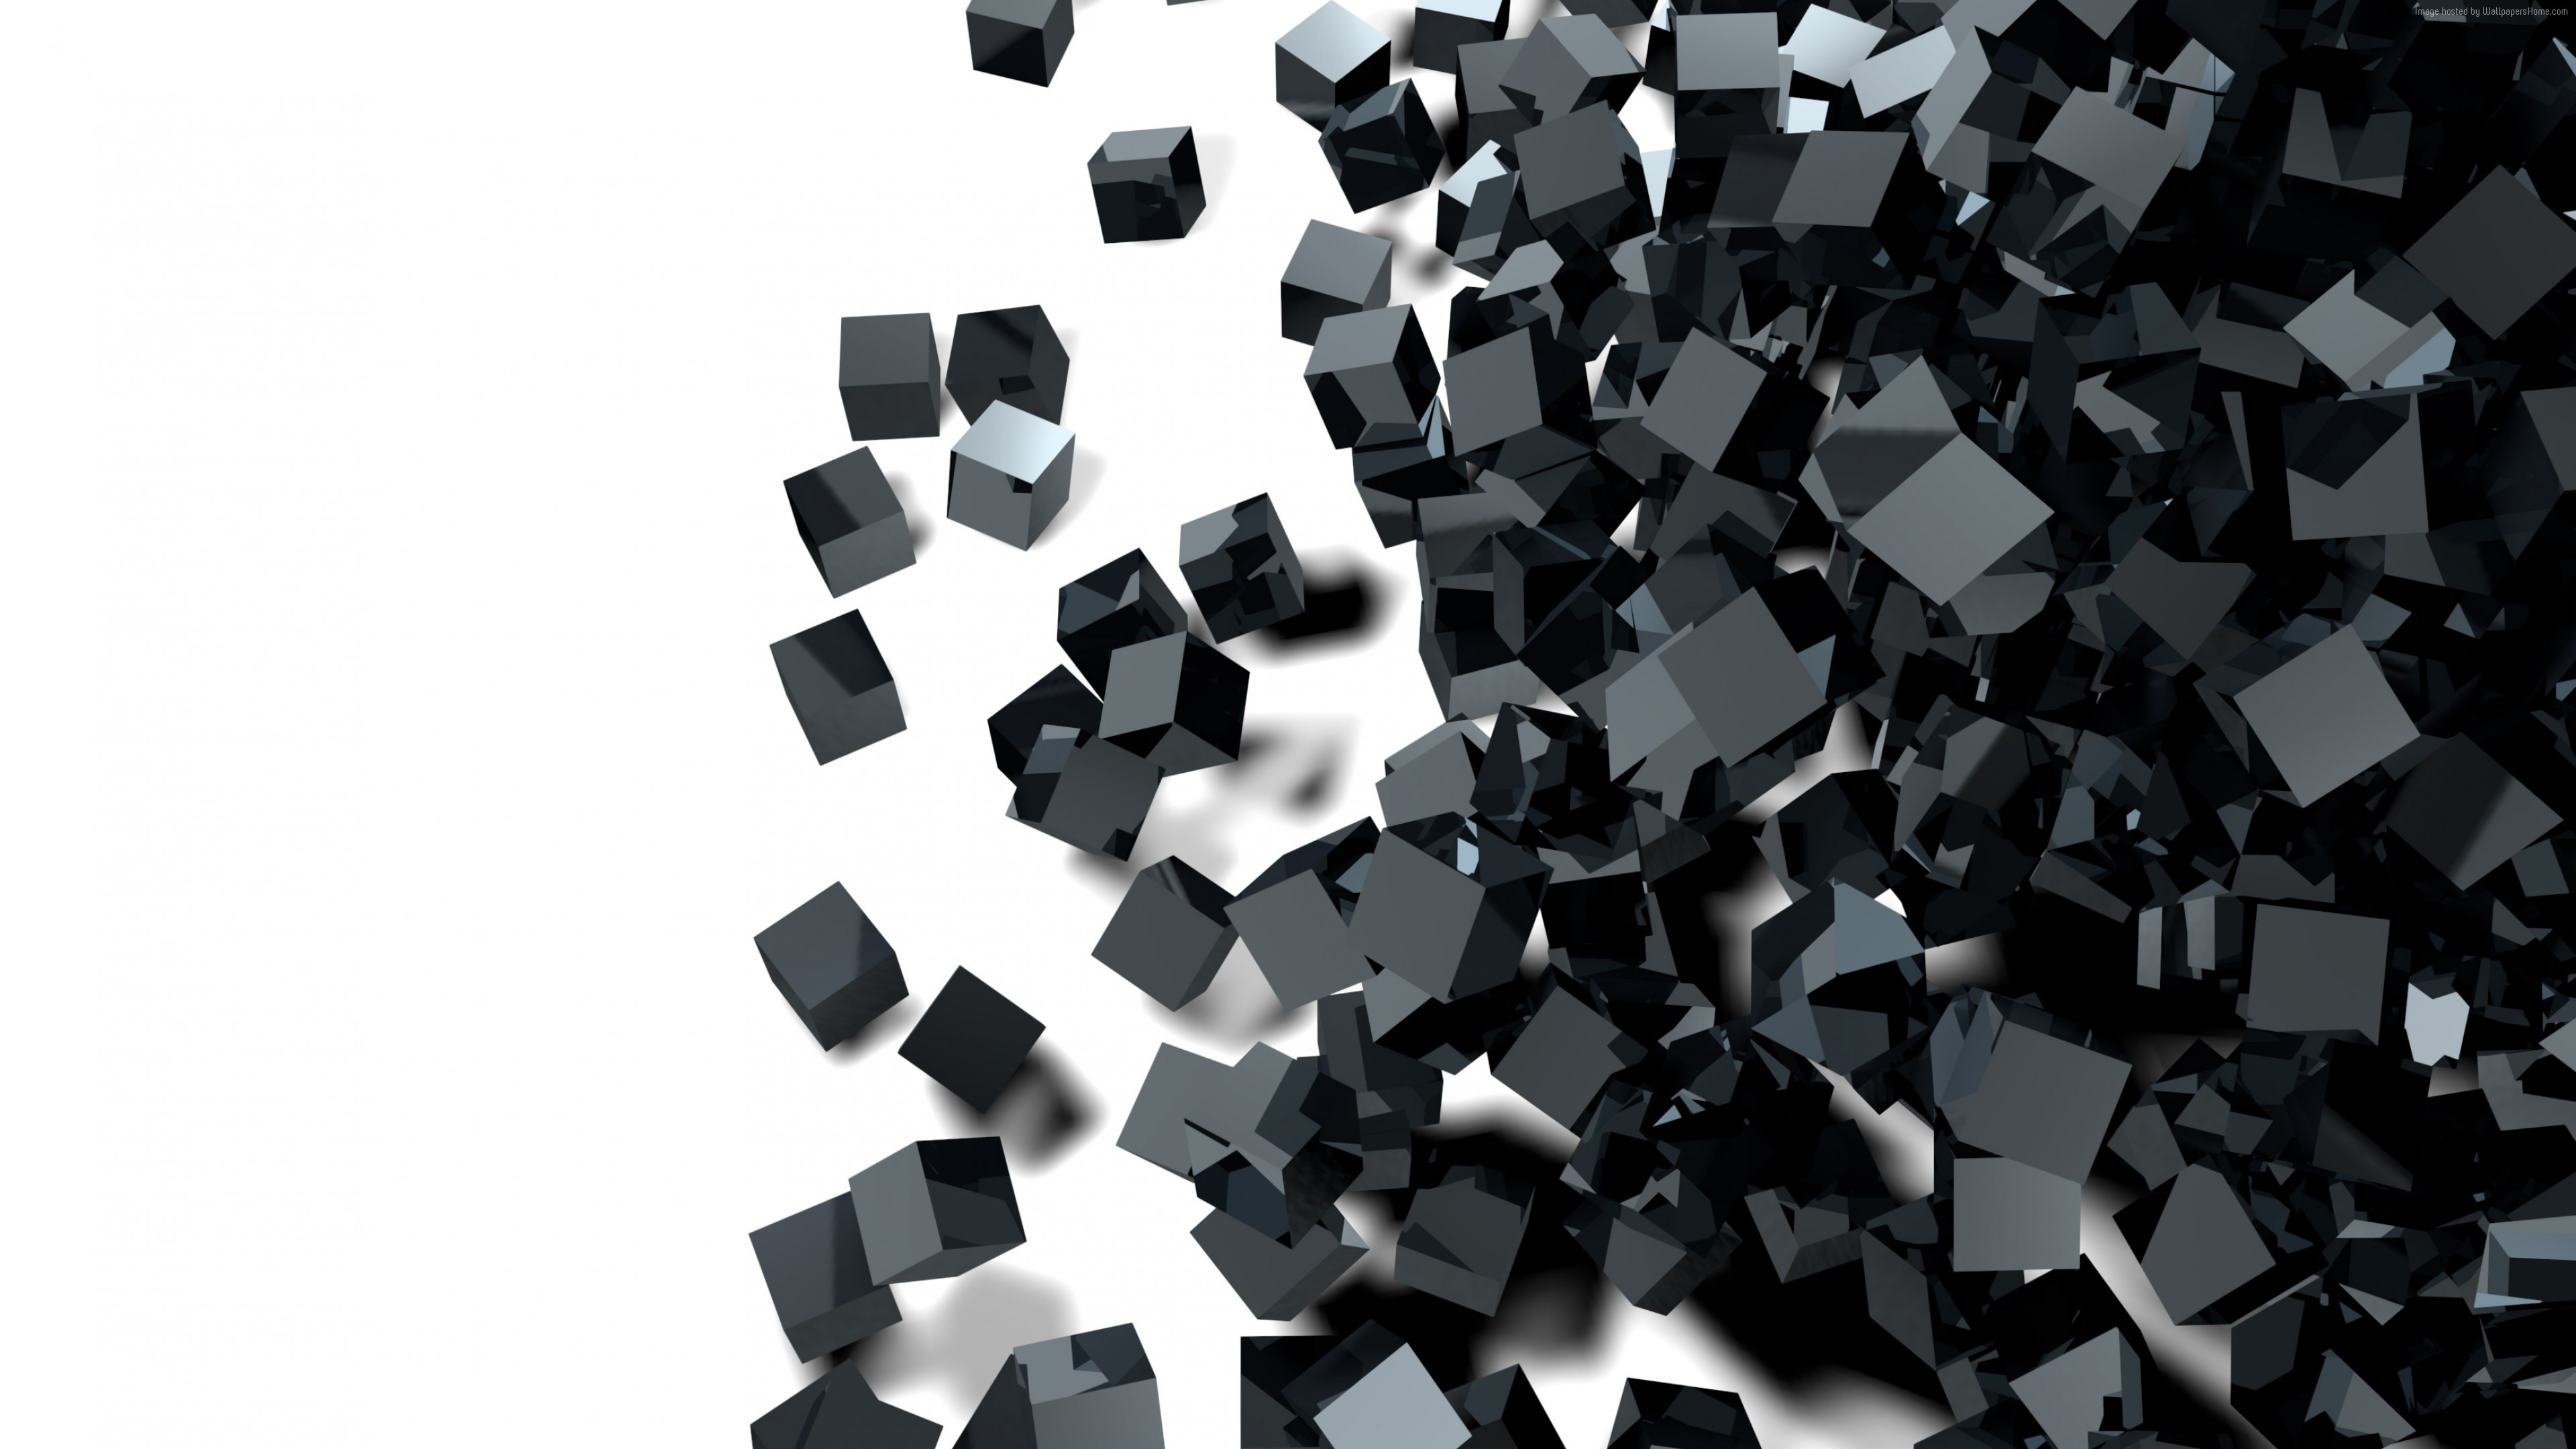 Wallpaper Cube Glass Black 3d 4k Abstract Black And White Abstract Wallpaper Iphone 3840x2160 Download Hd Wallpaper Wallpapertip